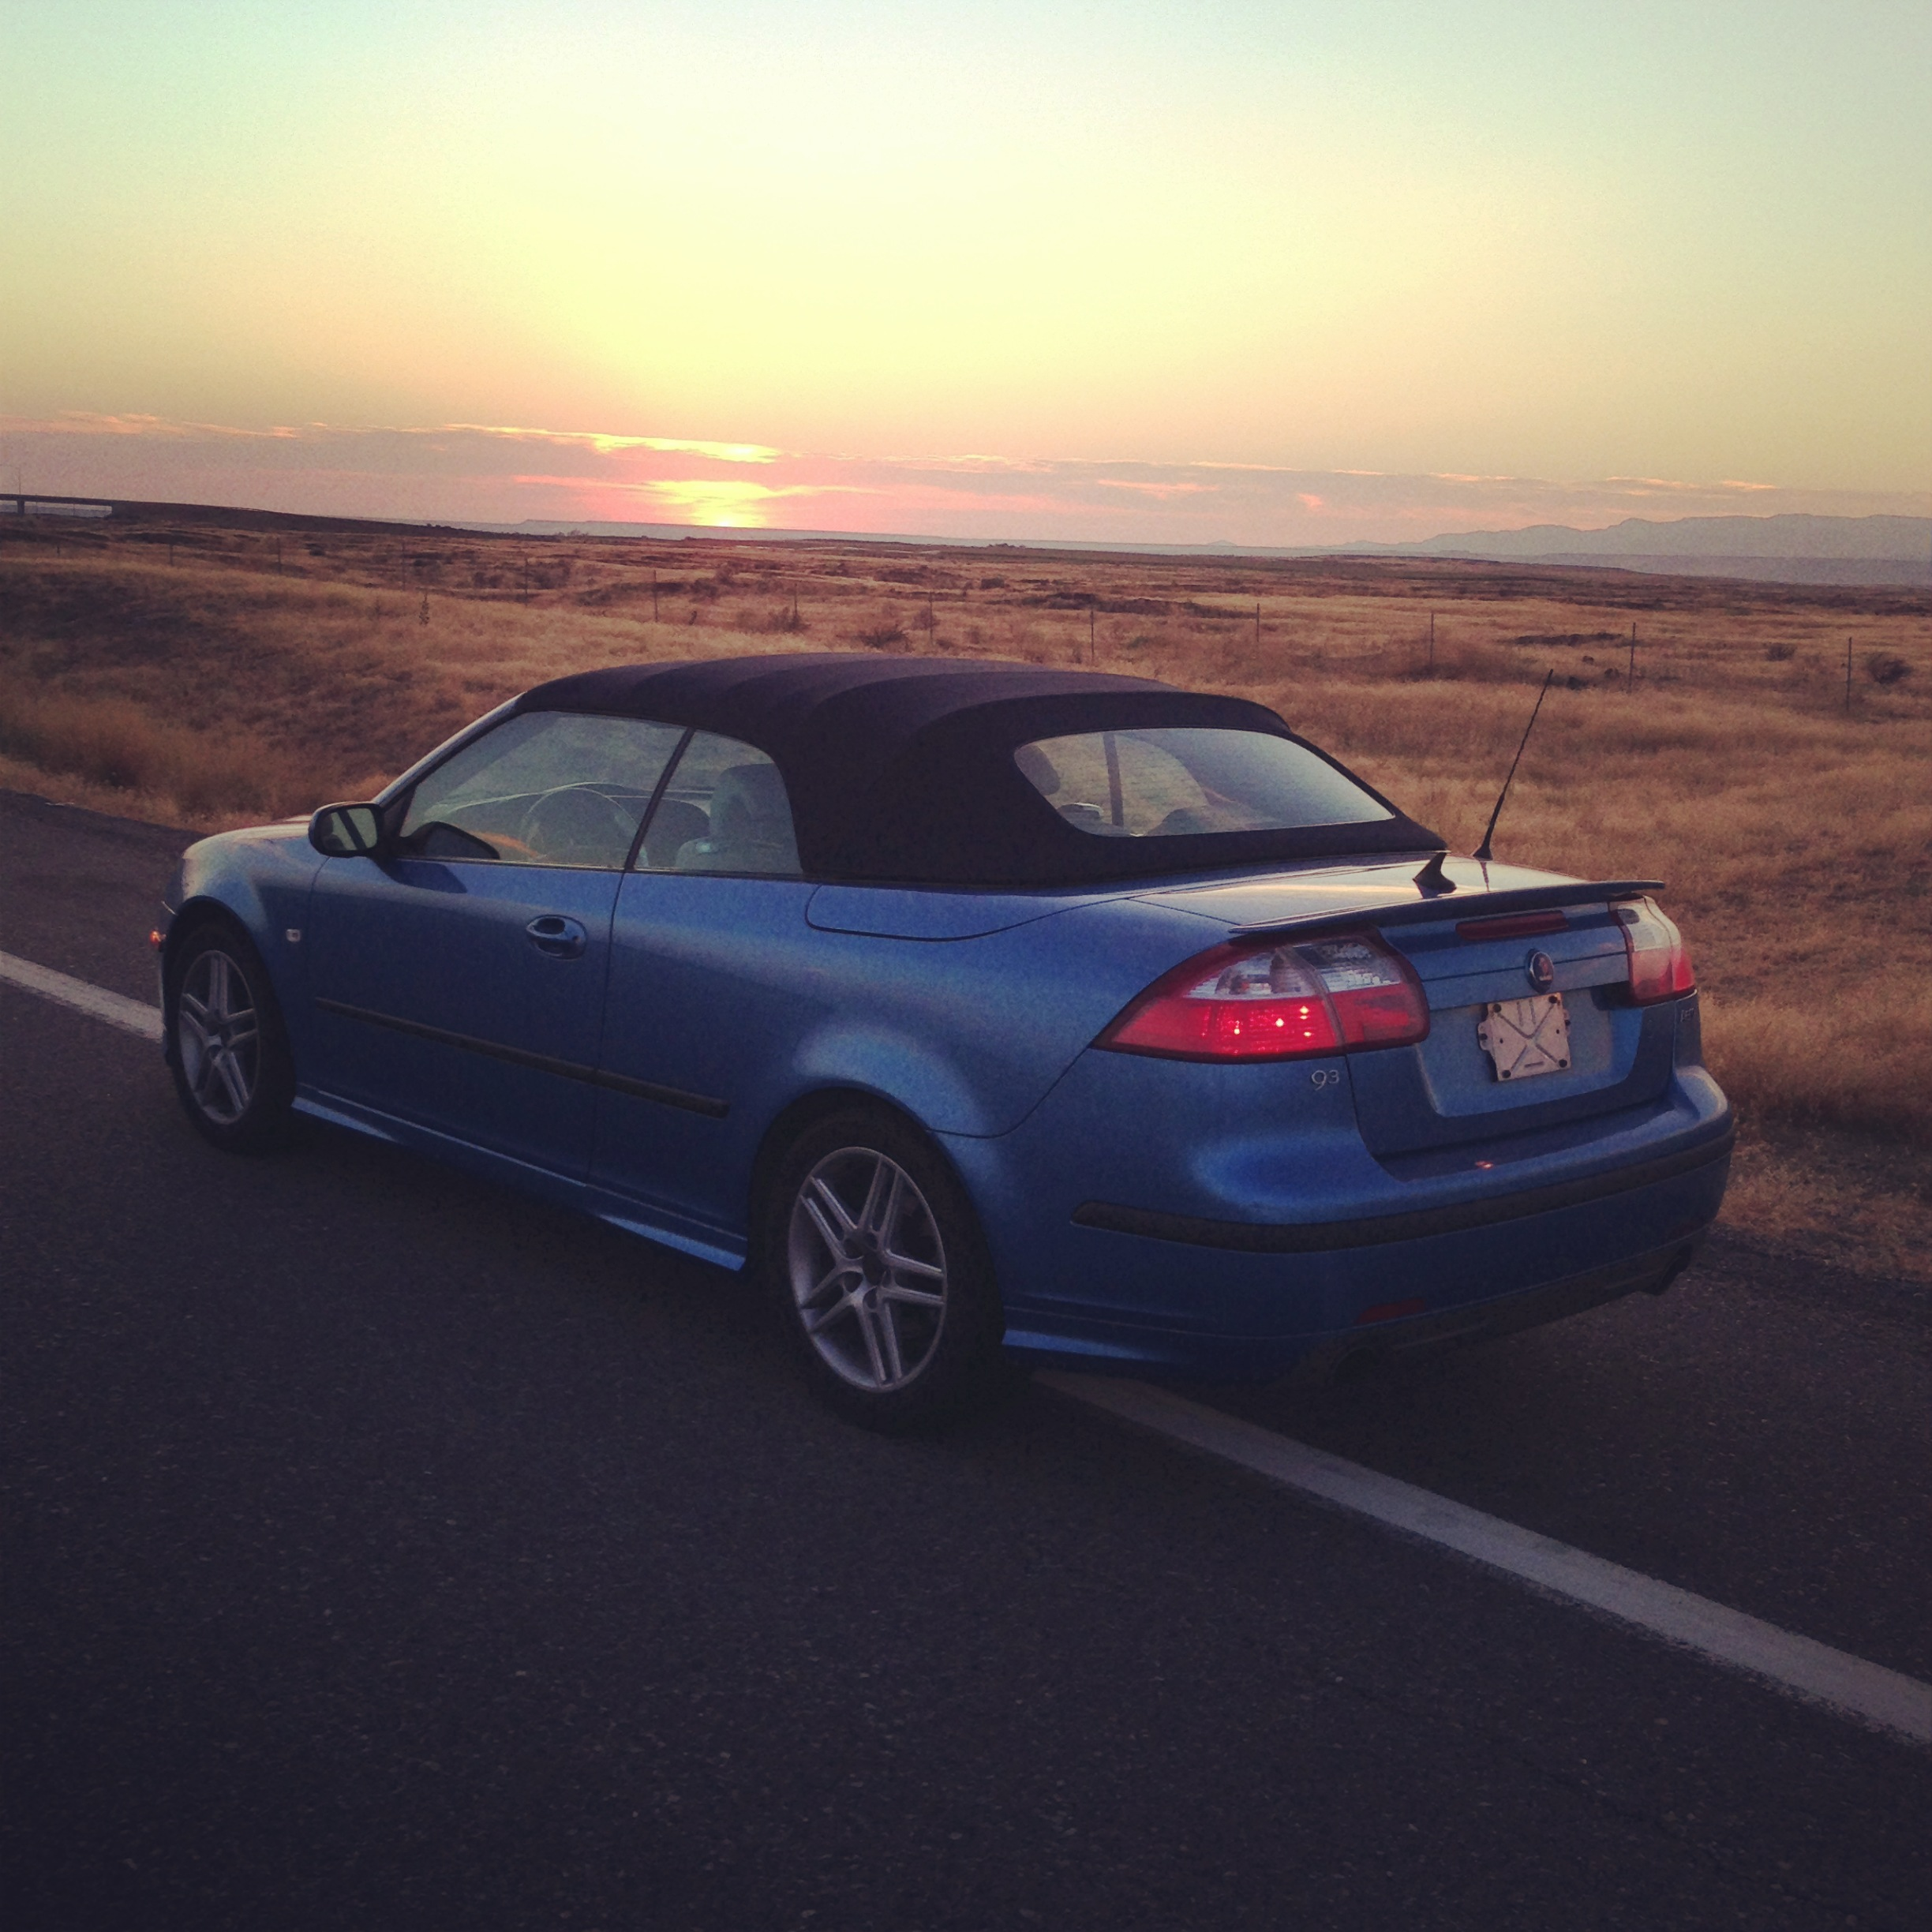 2006 Saab 9 3: Epic Great Drive: Santa Fe To Seattle